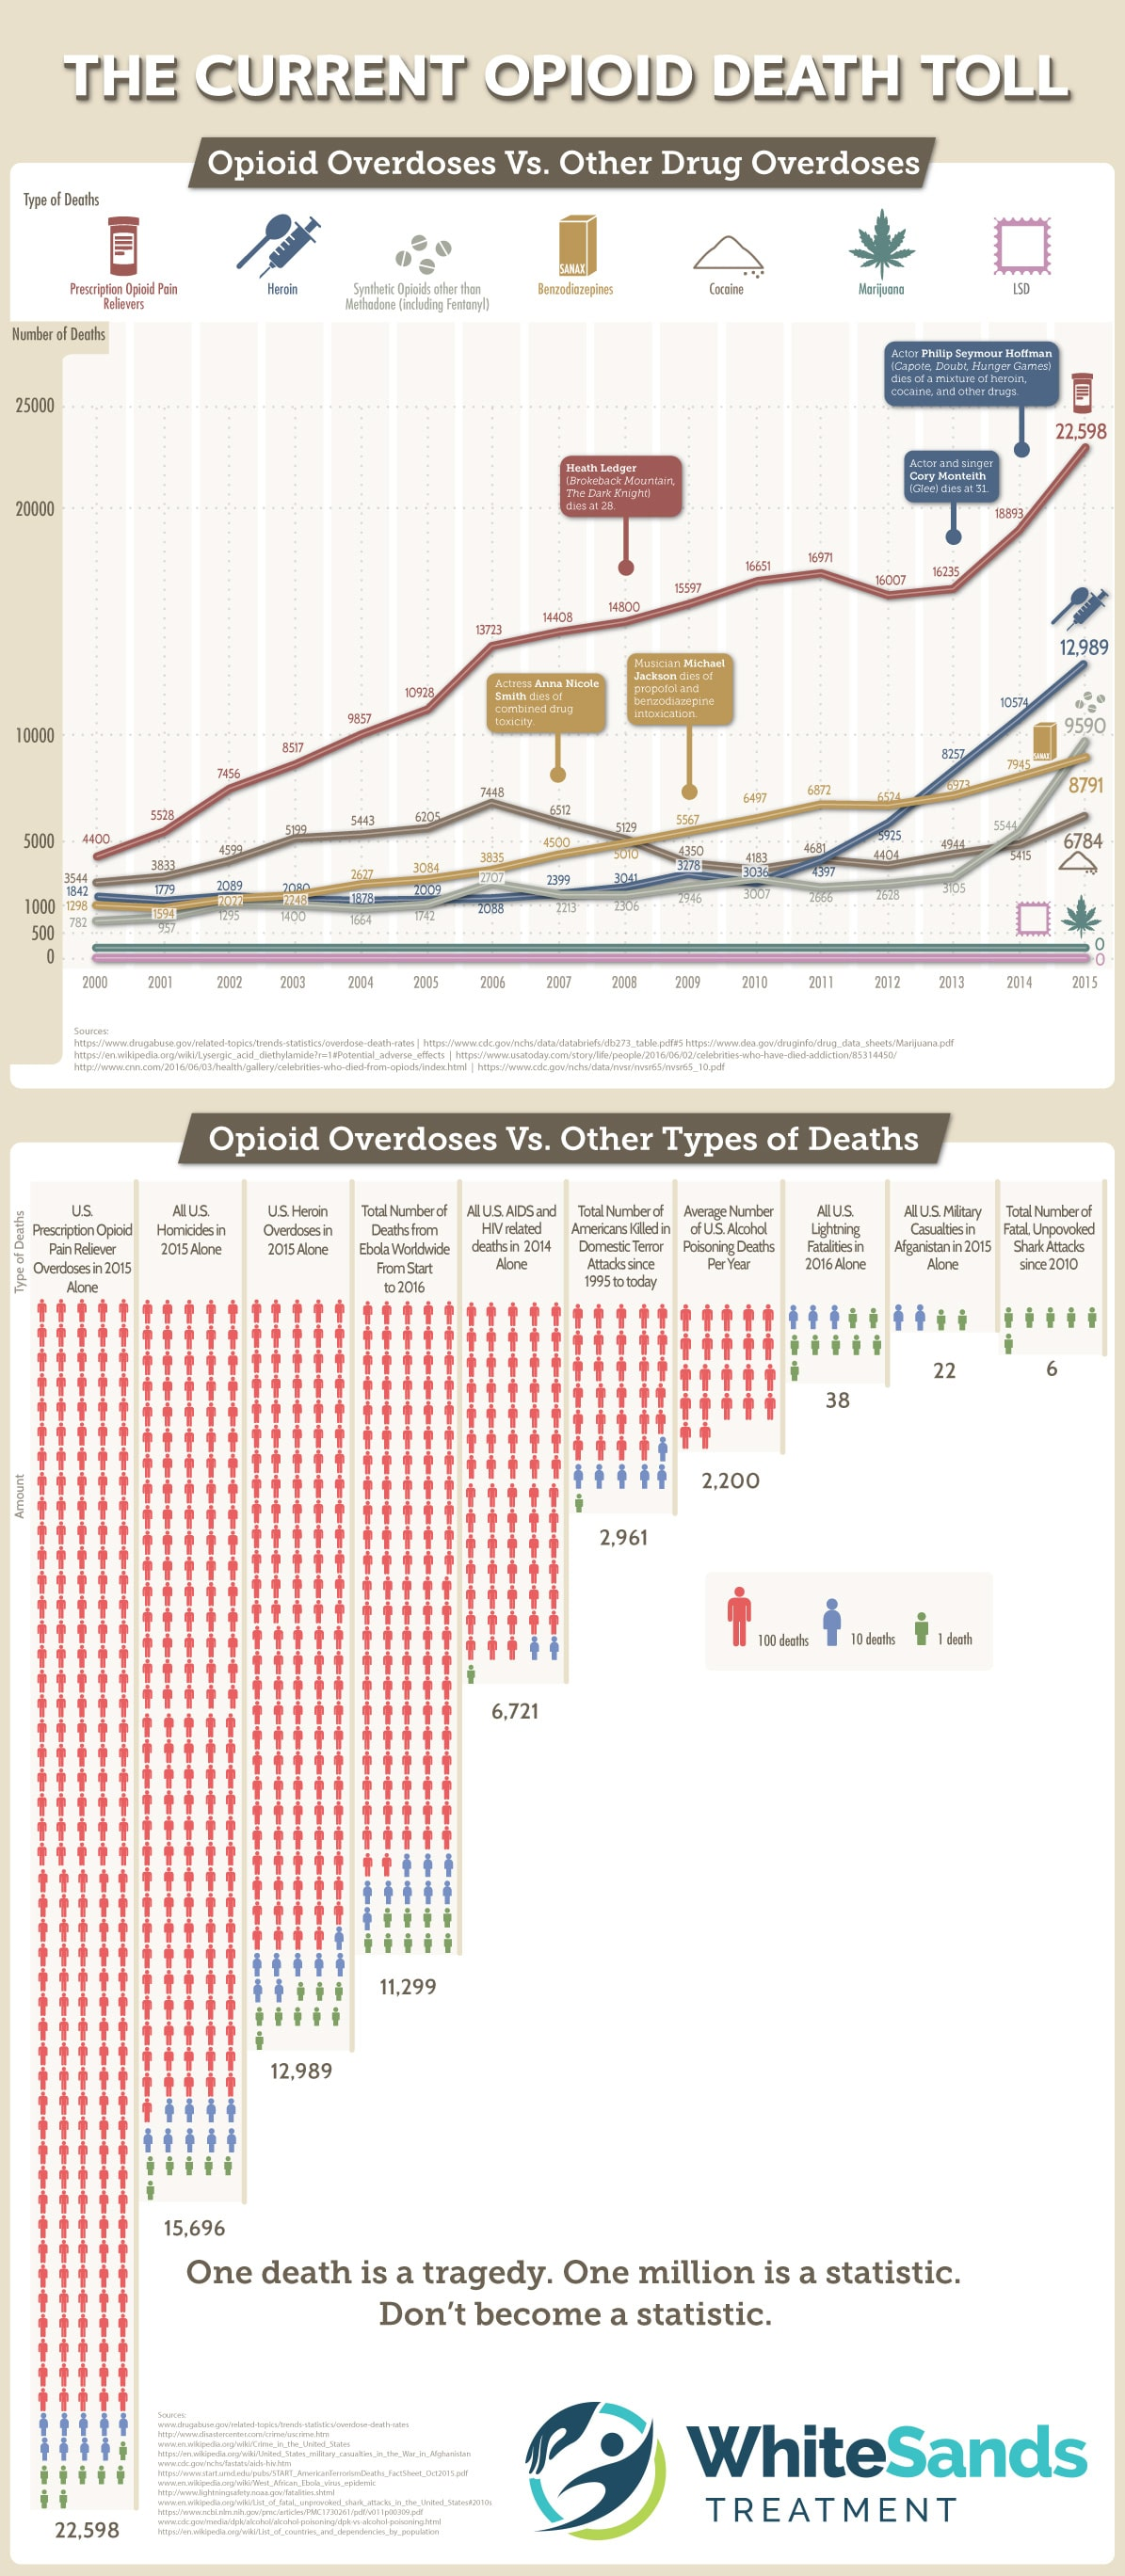 The Cruel Statistic of Opioid Deaths - Infographic